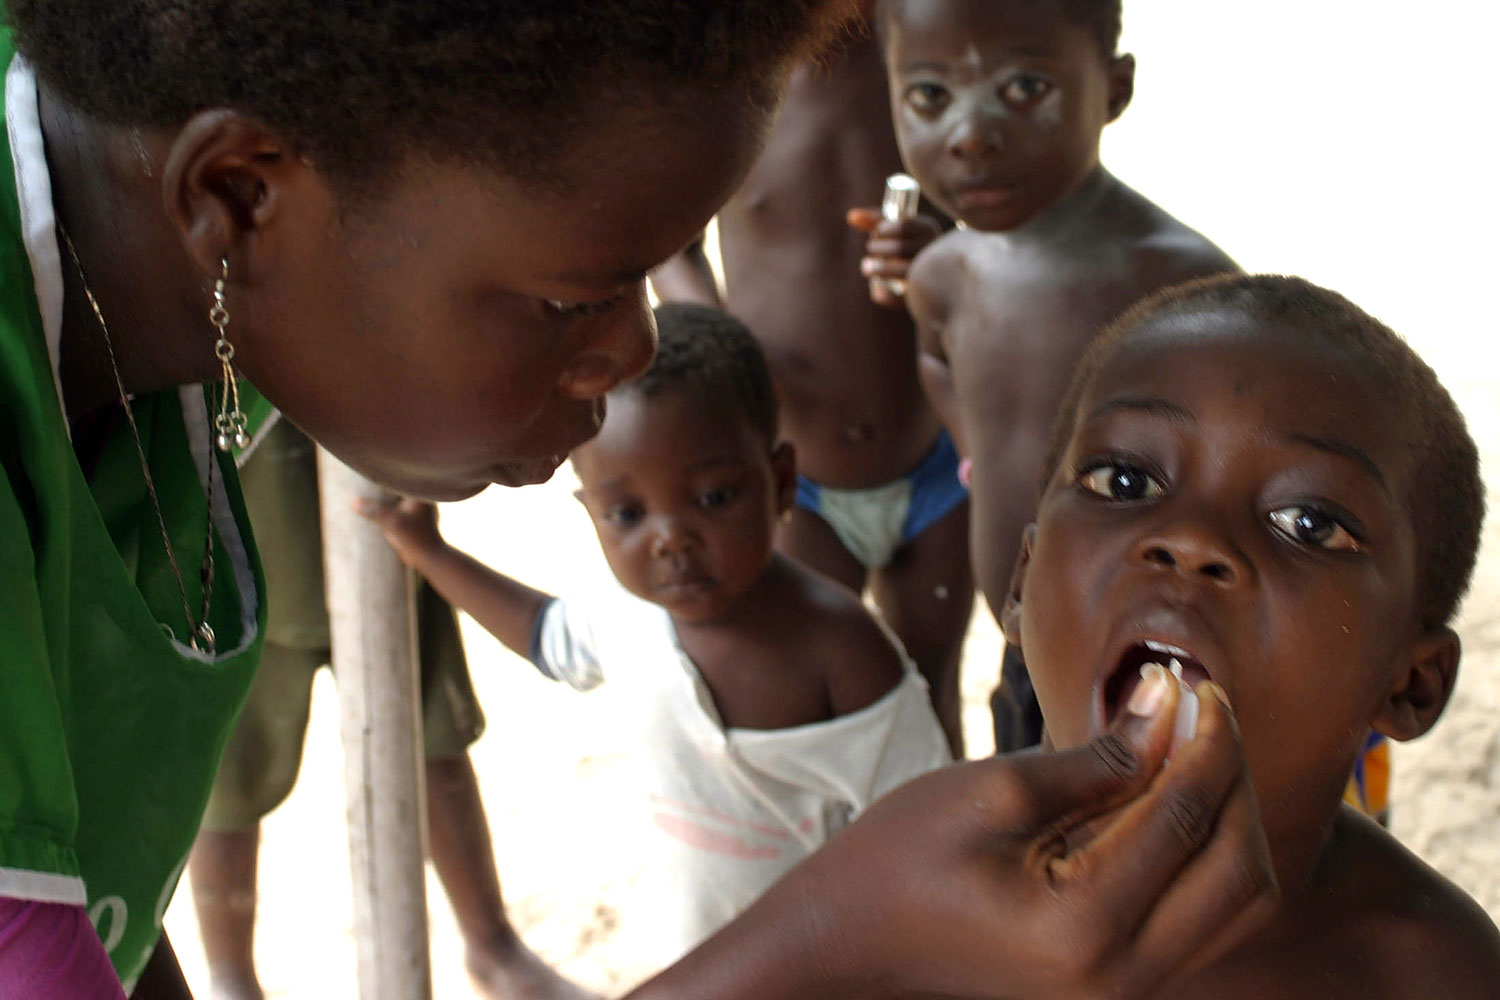 Picture shows a health care worker in a green uniform giving oral drops to a young boy who has his mouth open. Several other young children can be seen queued behind the boy.